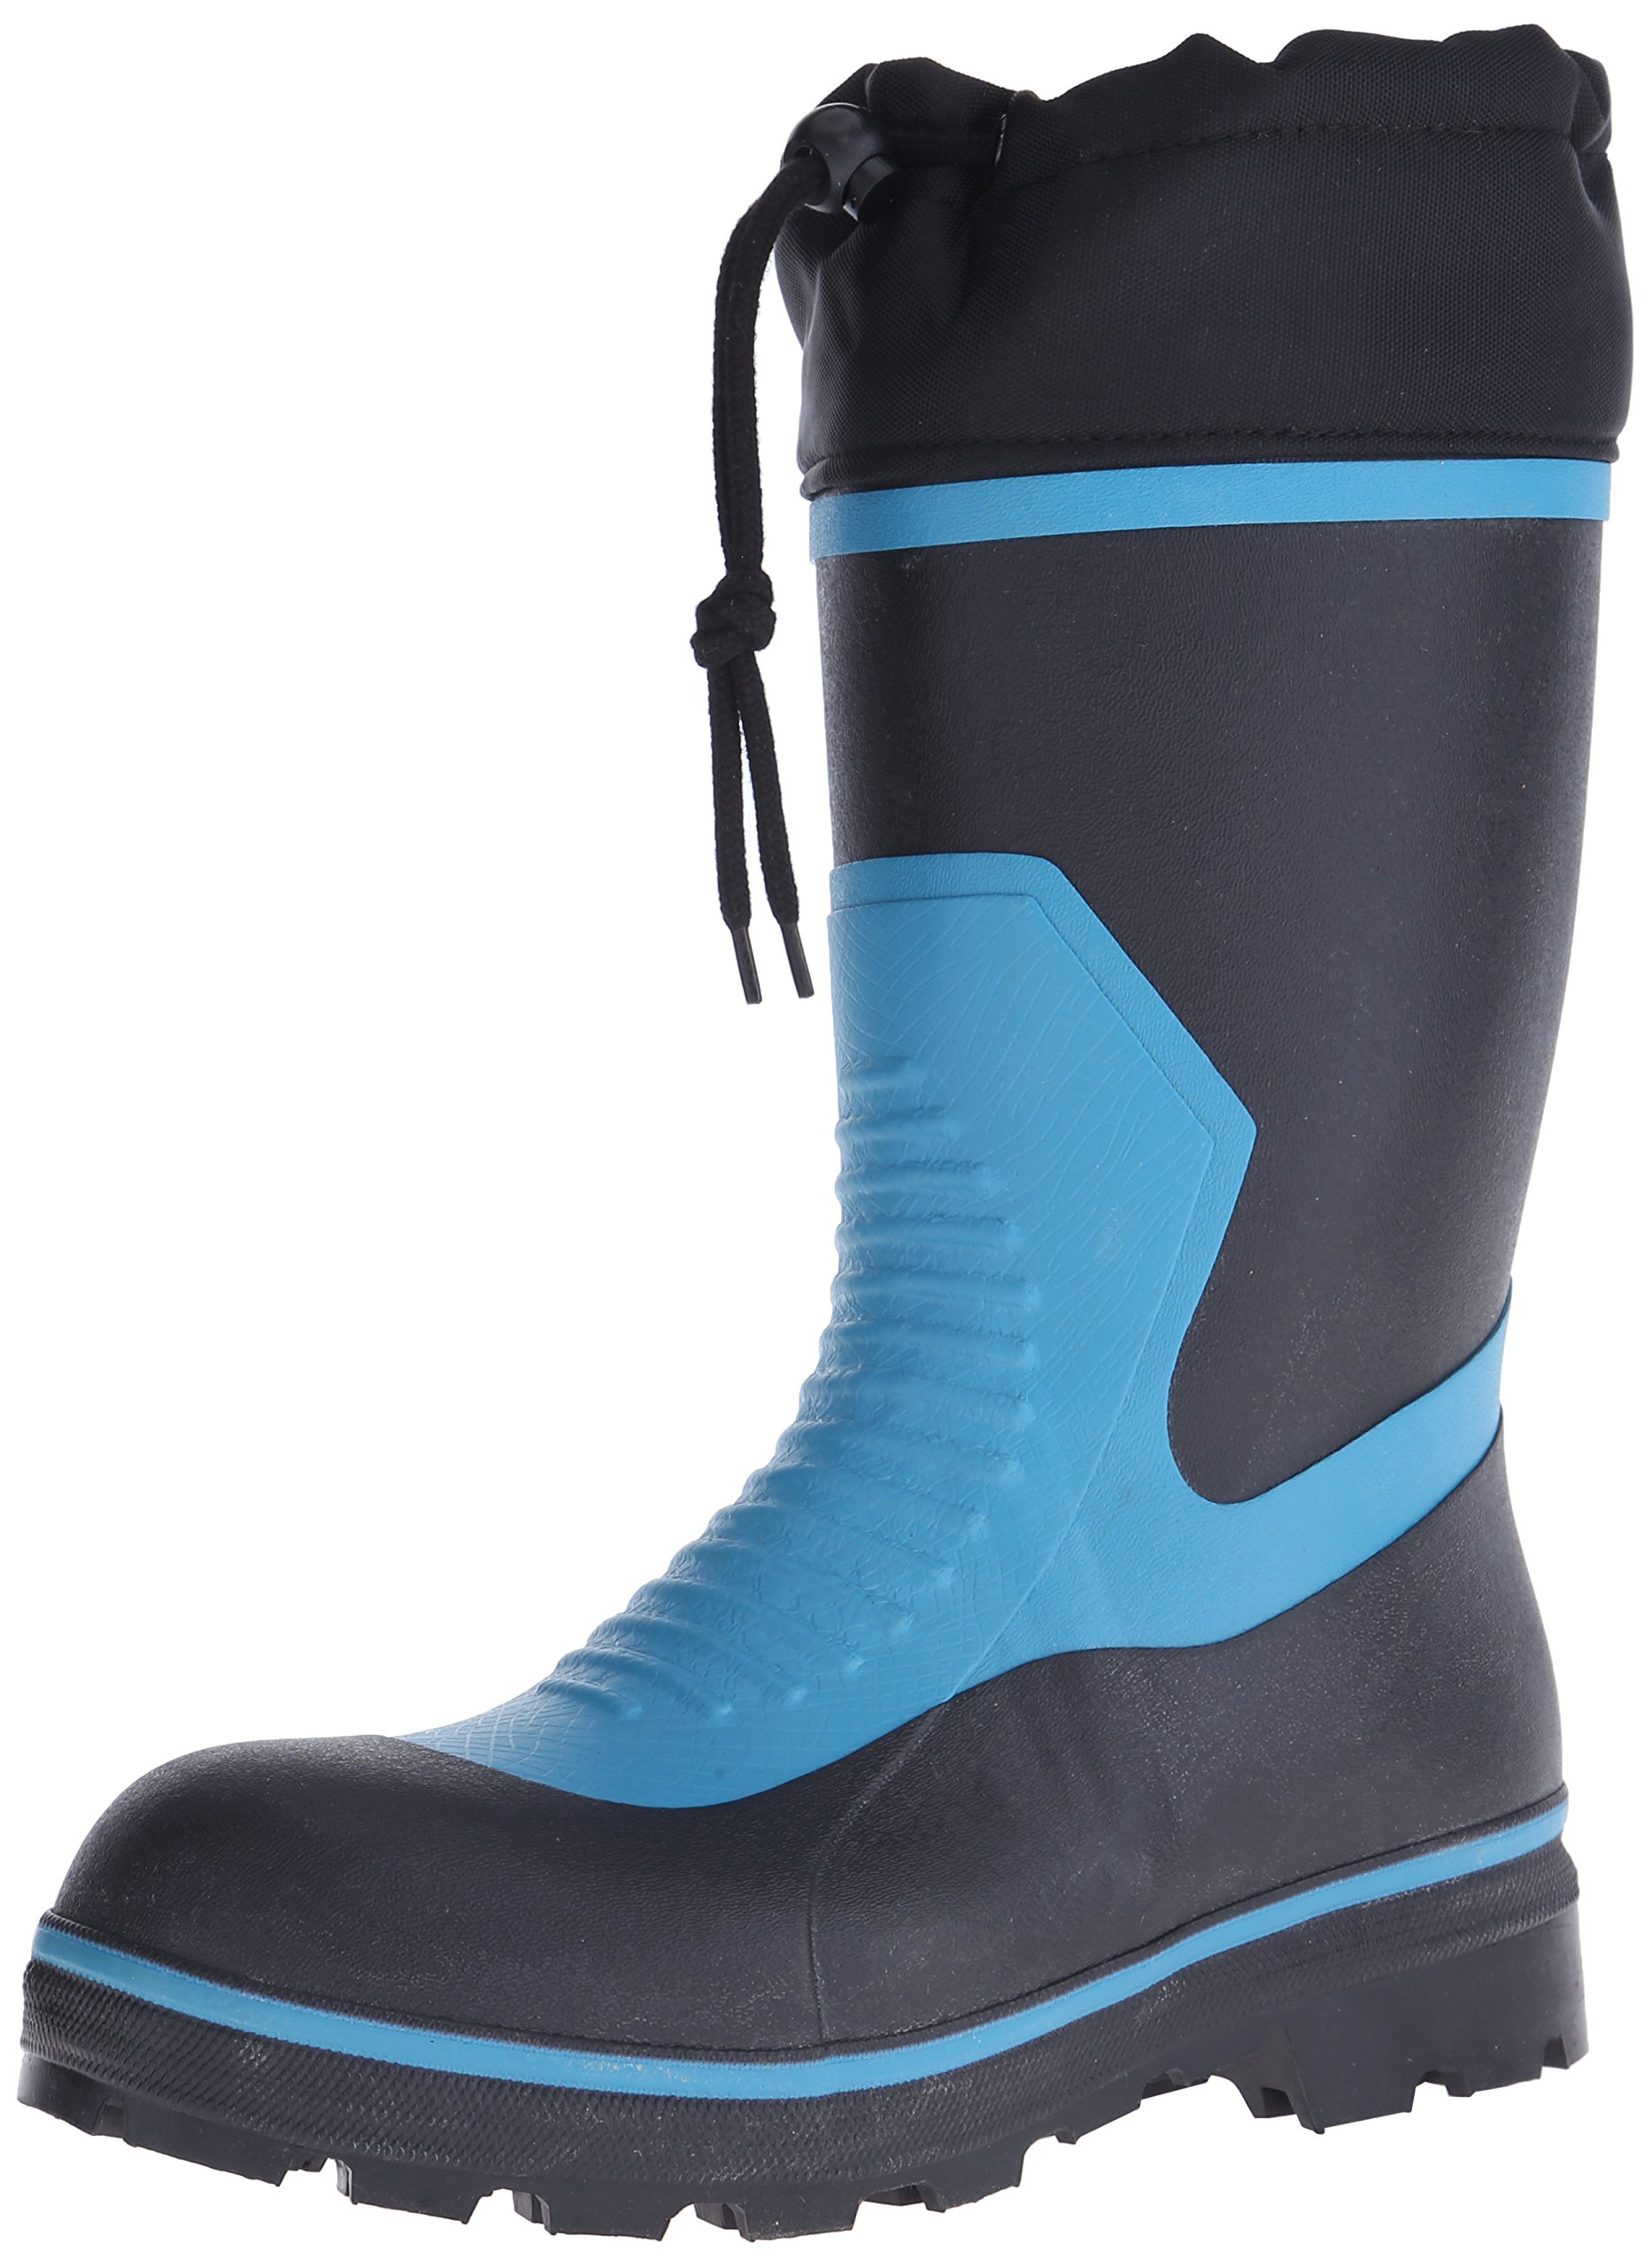 Viking Footwear Harvik by Viking ComfortLite Waterproof Boot, Blue/Black, 9 M US